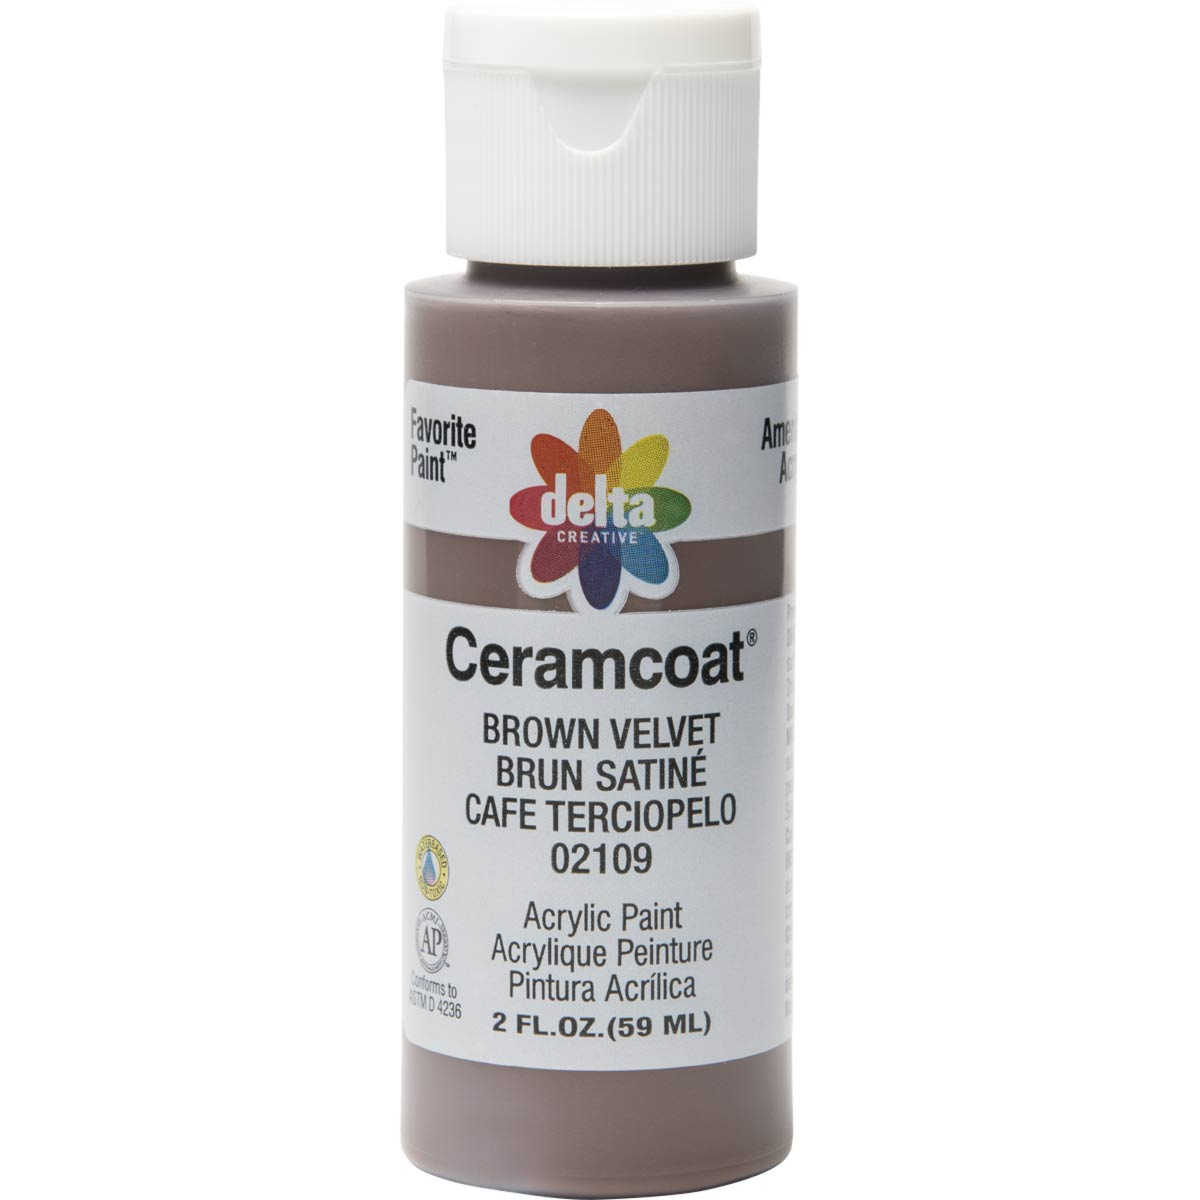 Delta Ceramcoat ® Acrylic Paint - Brown Velvet, 2 oz. - 021090202W